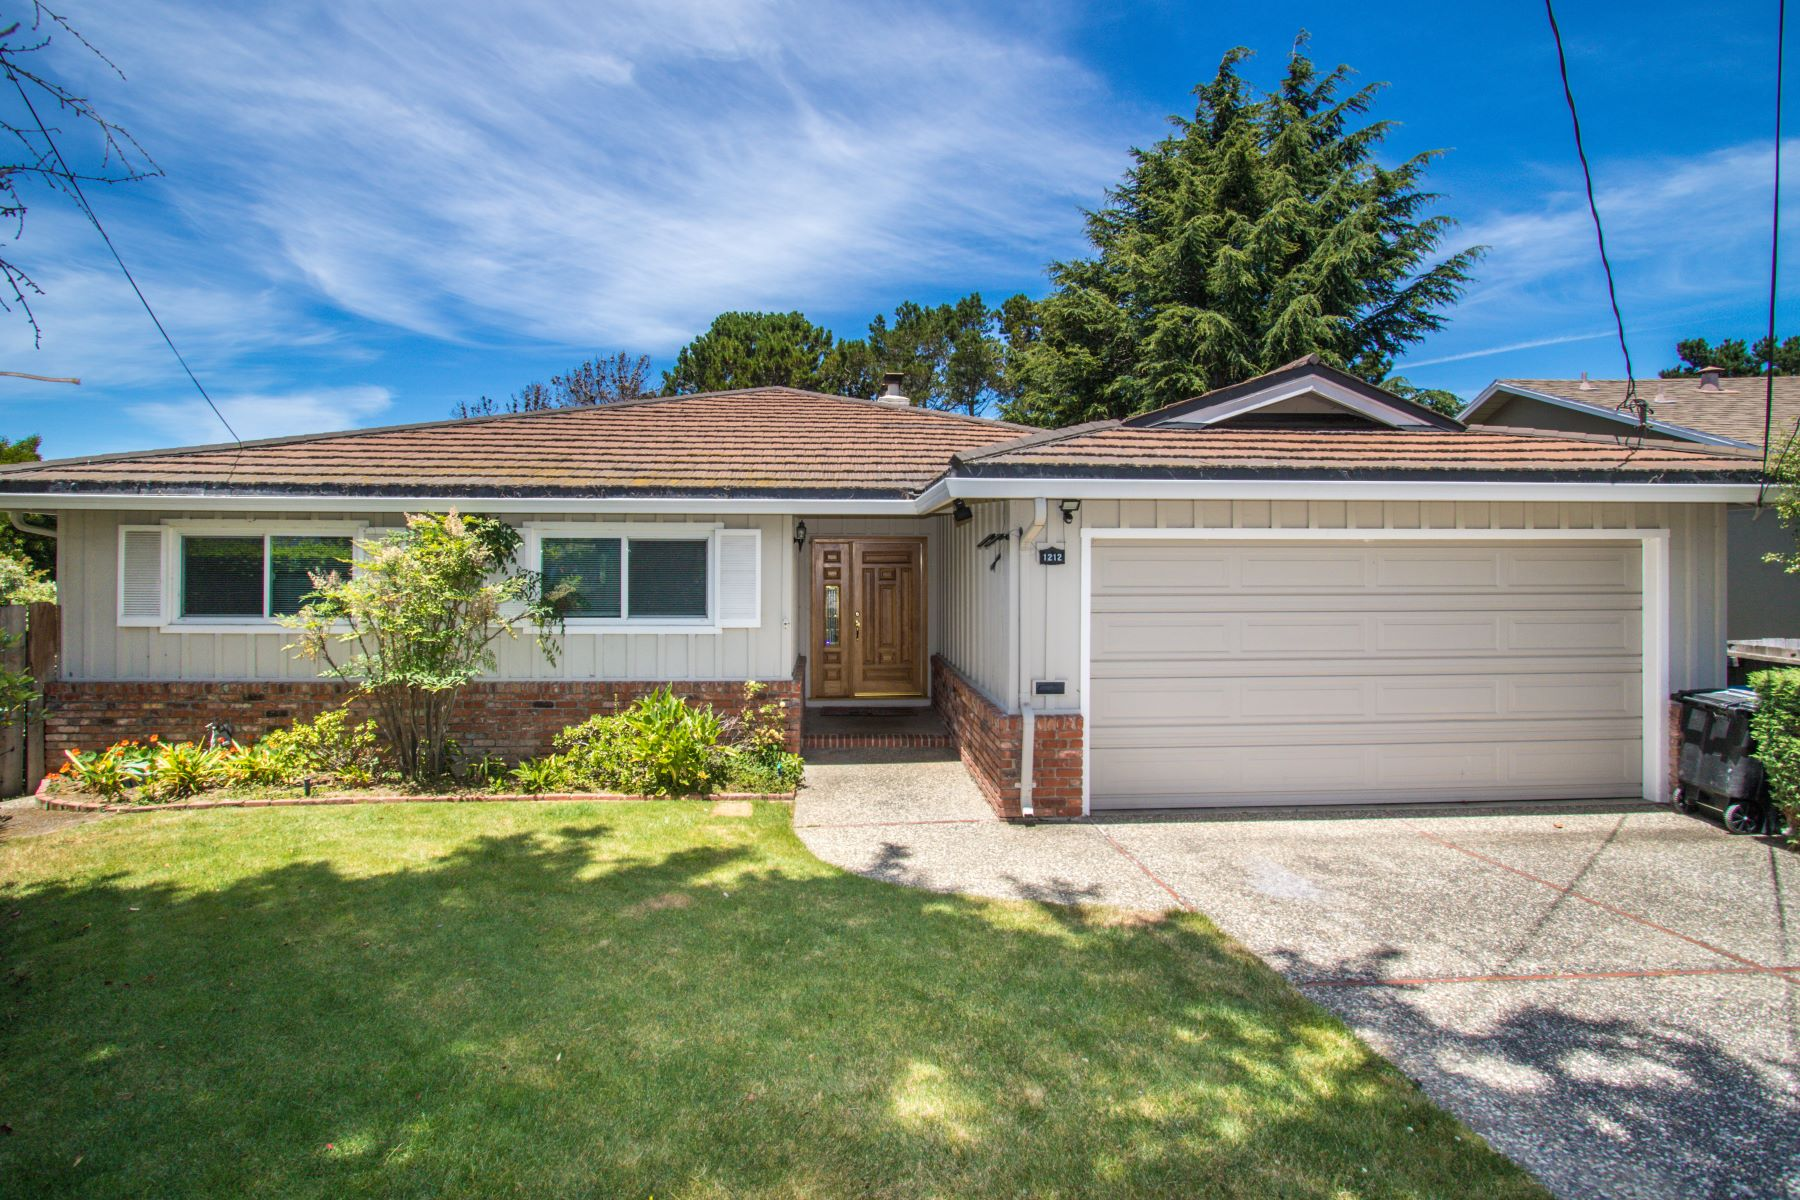 Single Family Homes for Active at Updated Home in Excellent Location 1212 31st Avenue San Mateo, California 94403 United States